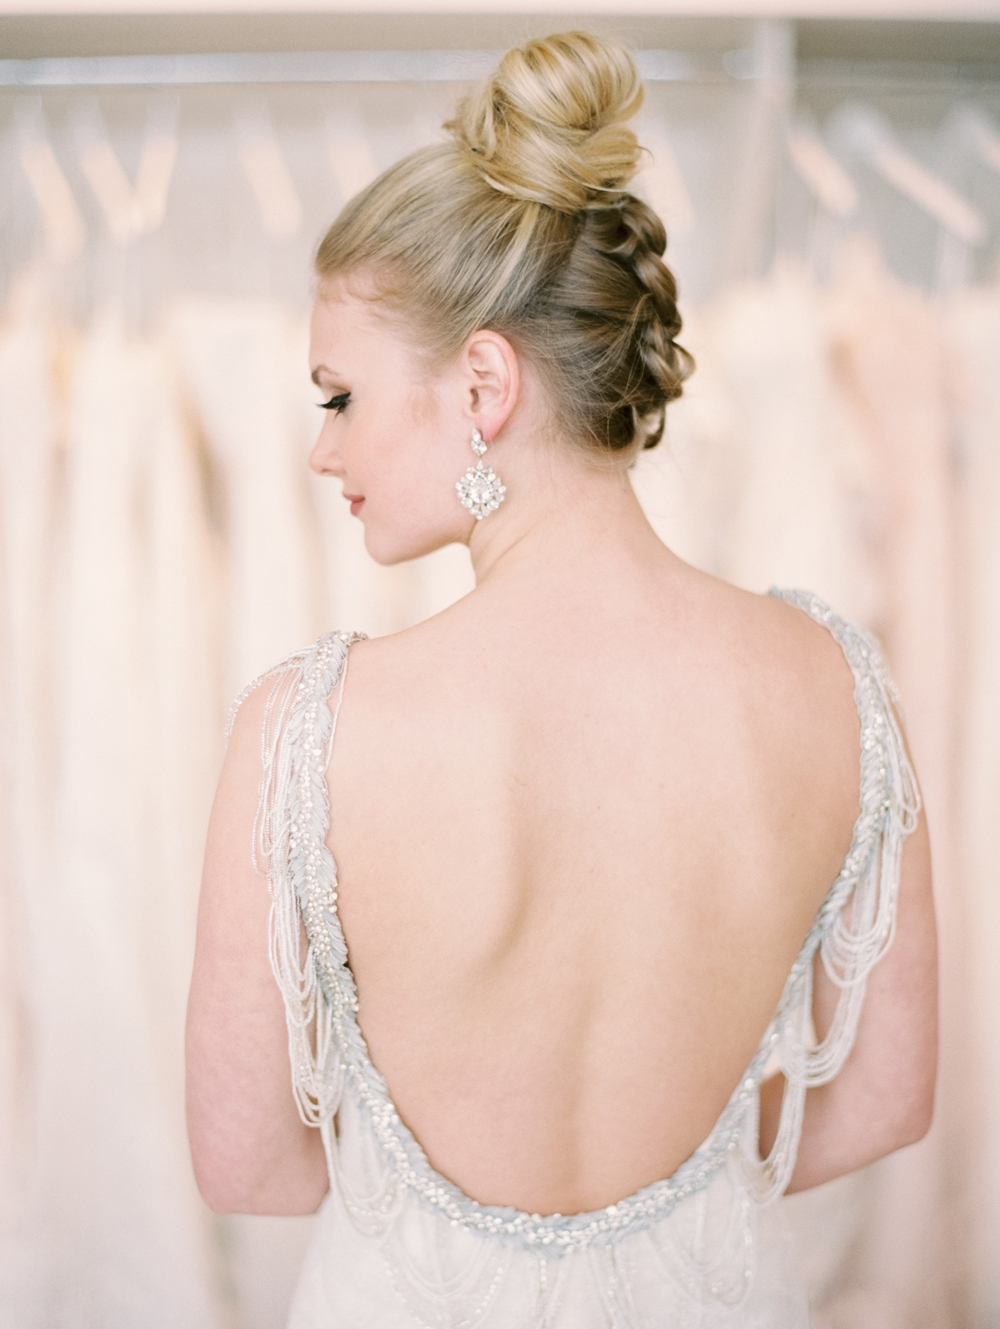 Calgary Wedding Photographers | The Bridal Boutique Calgary | Commercial Photographer | Wedding Dress Editorial